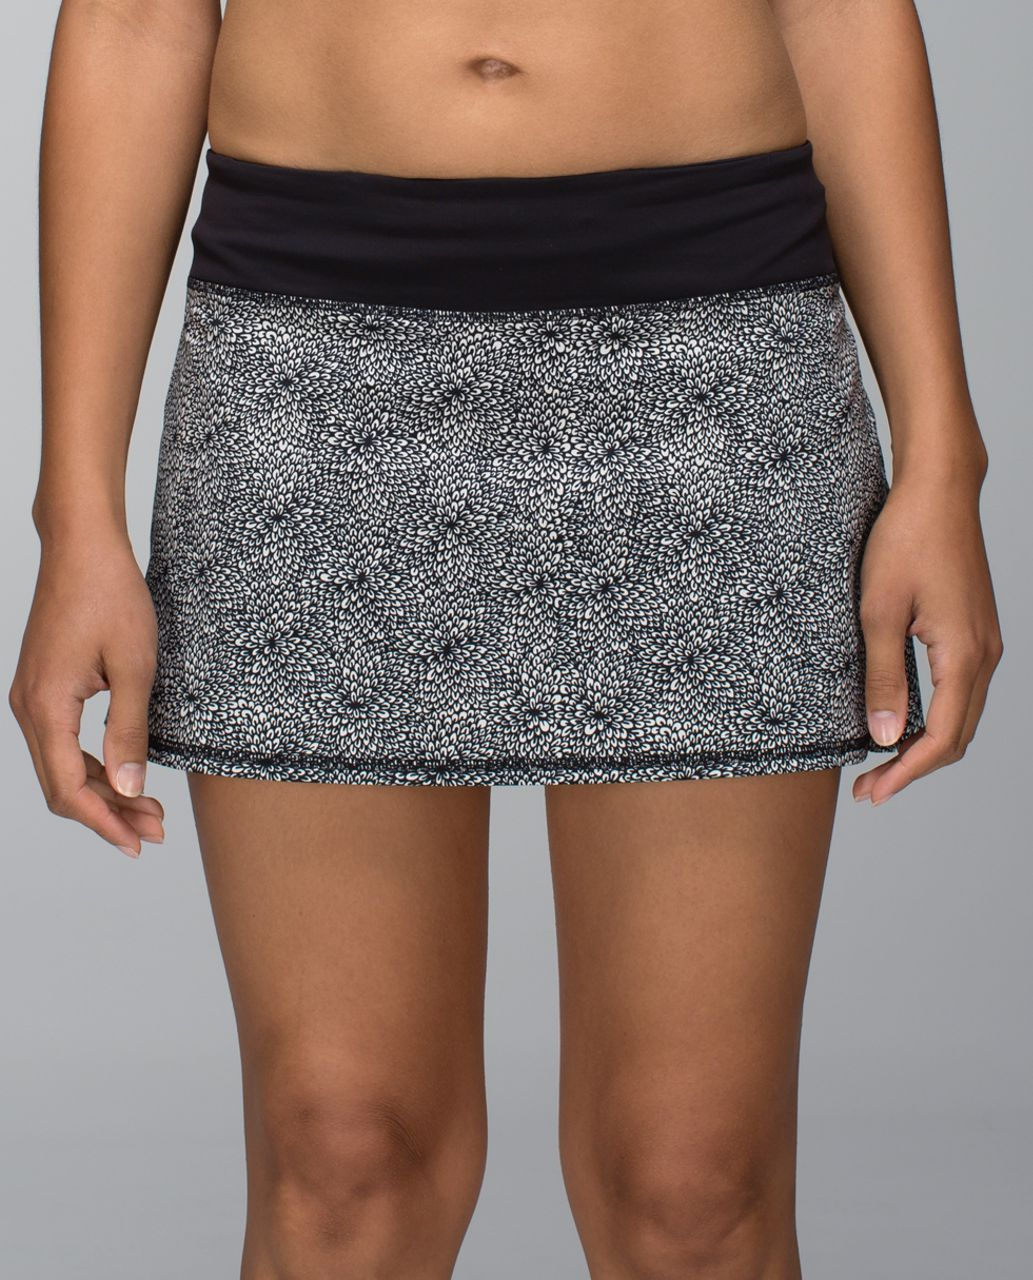 Lululemon Run:  Pace Setter Skirt *4-way Stretch (Regular) - Plush Petal Black Ghost / Black